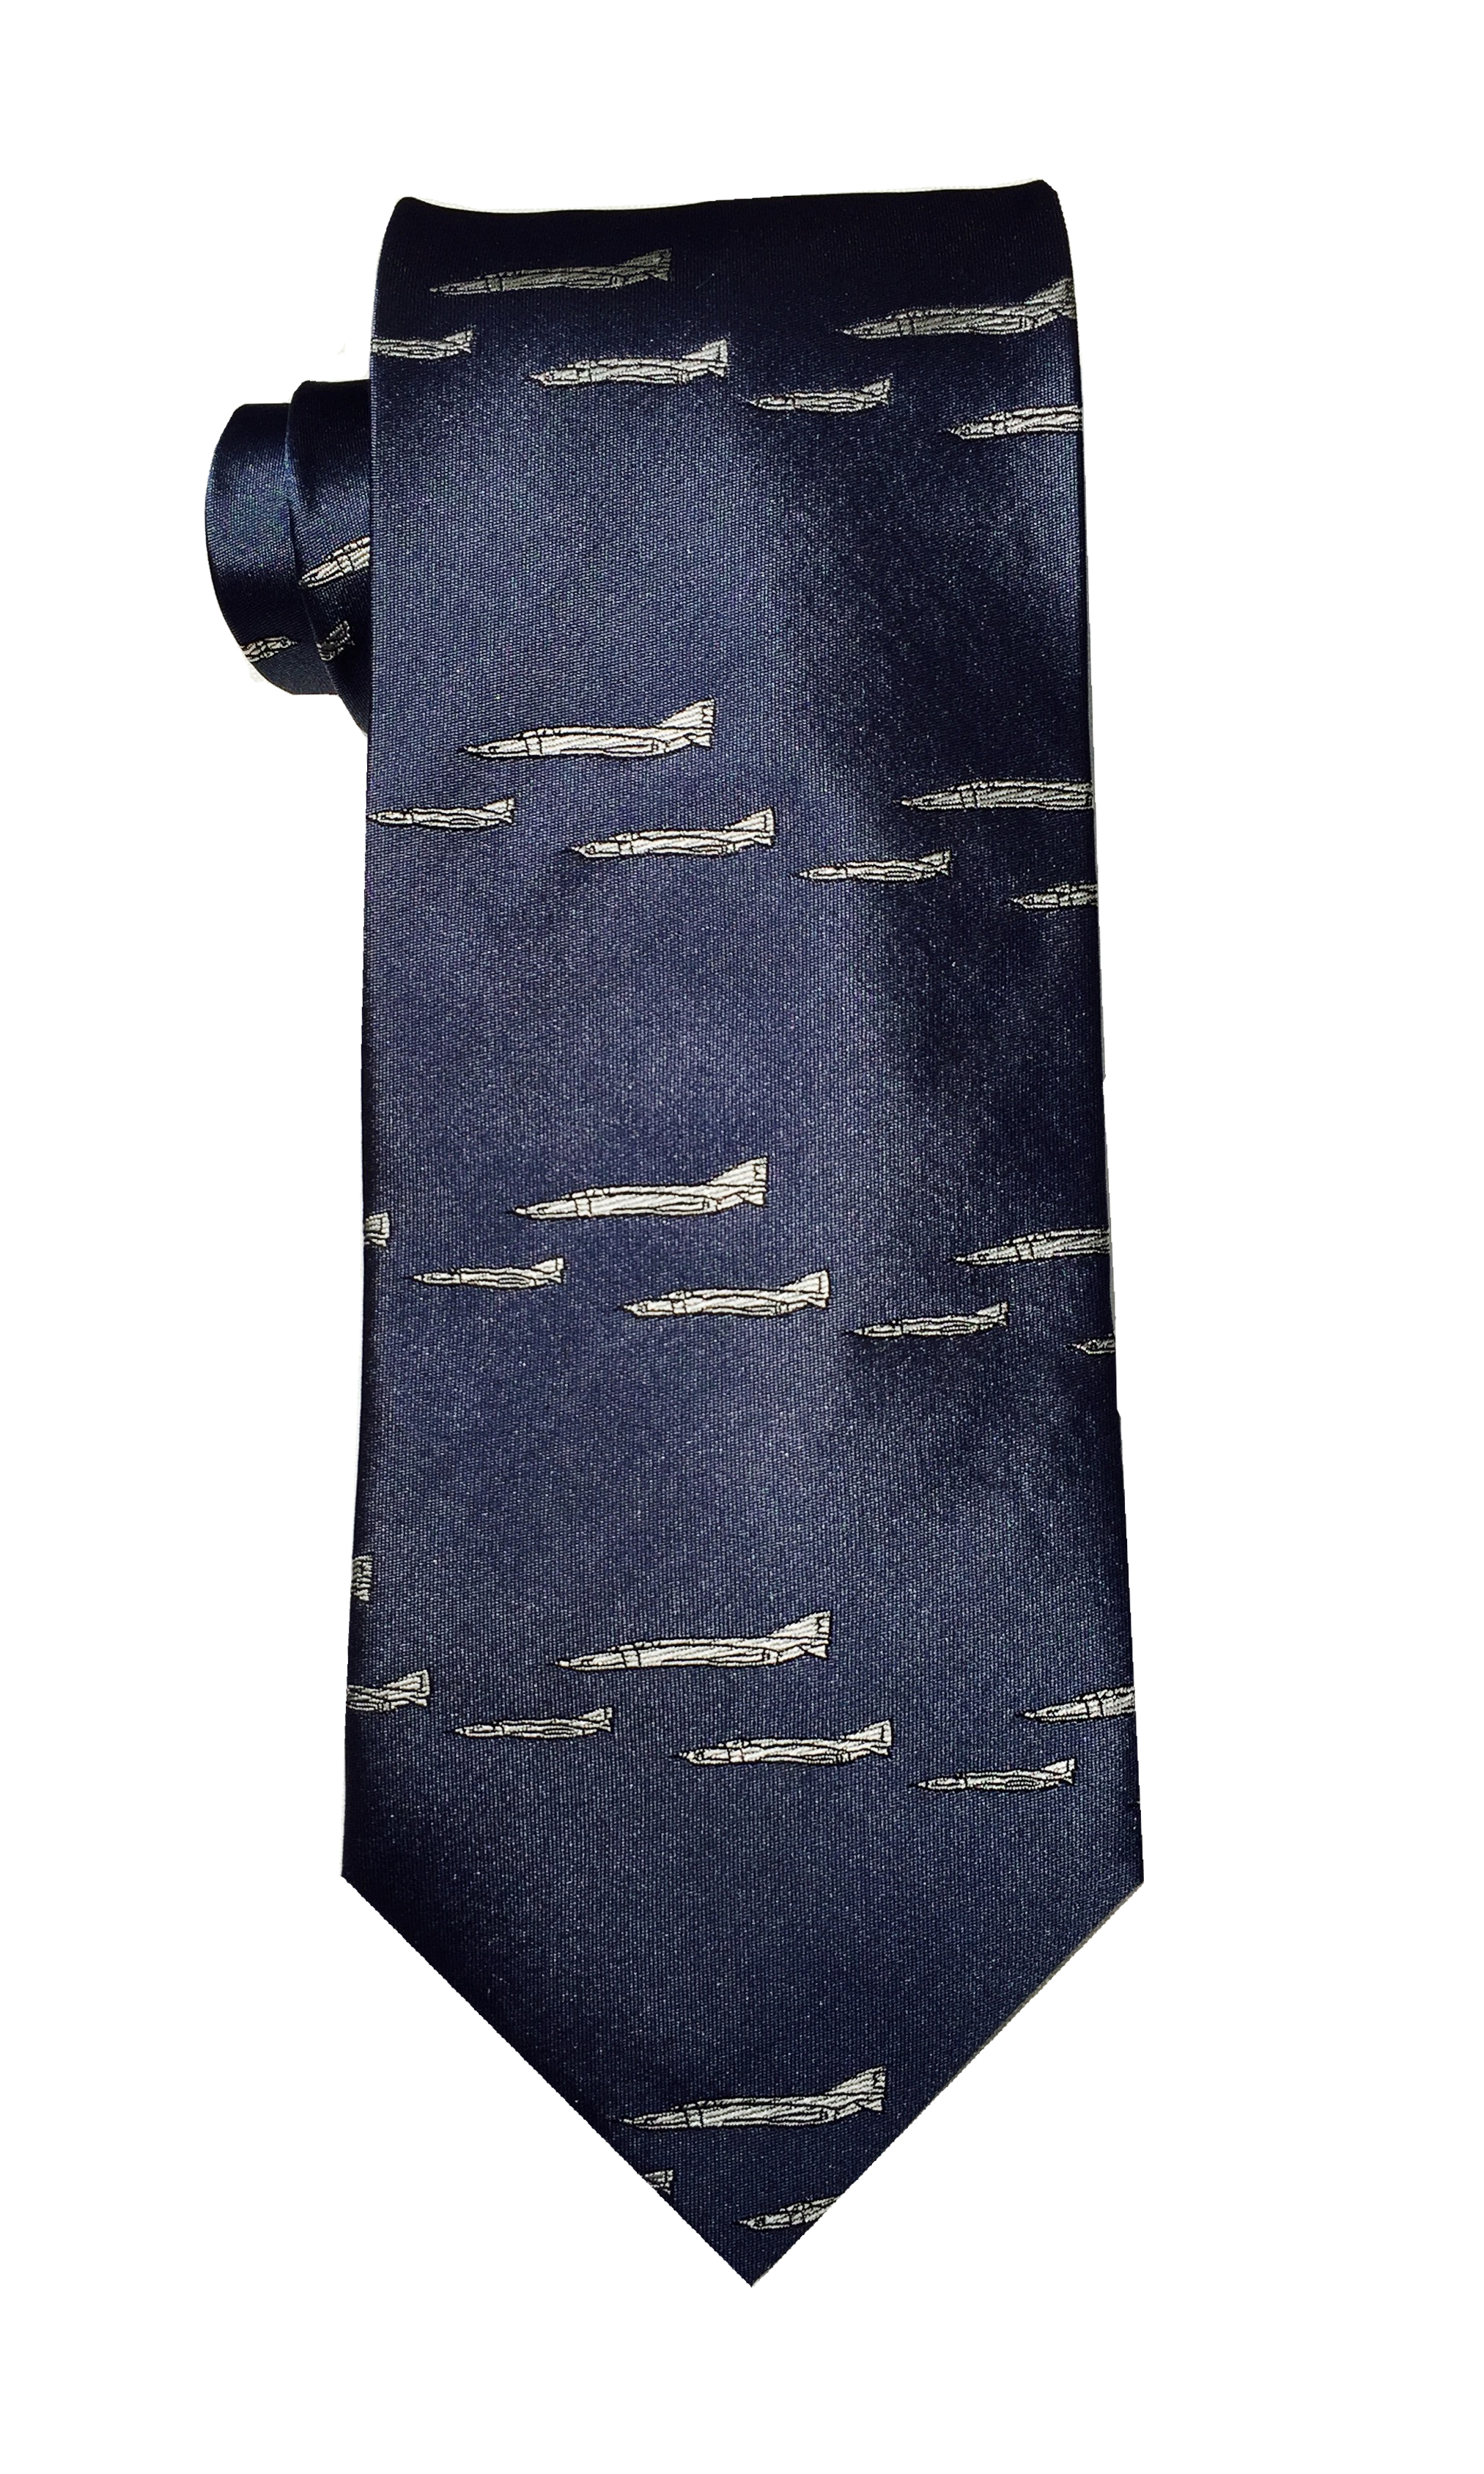 F-4 Phantom jet tie in navy